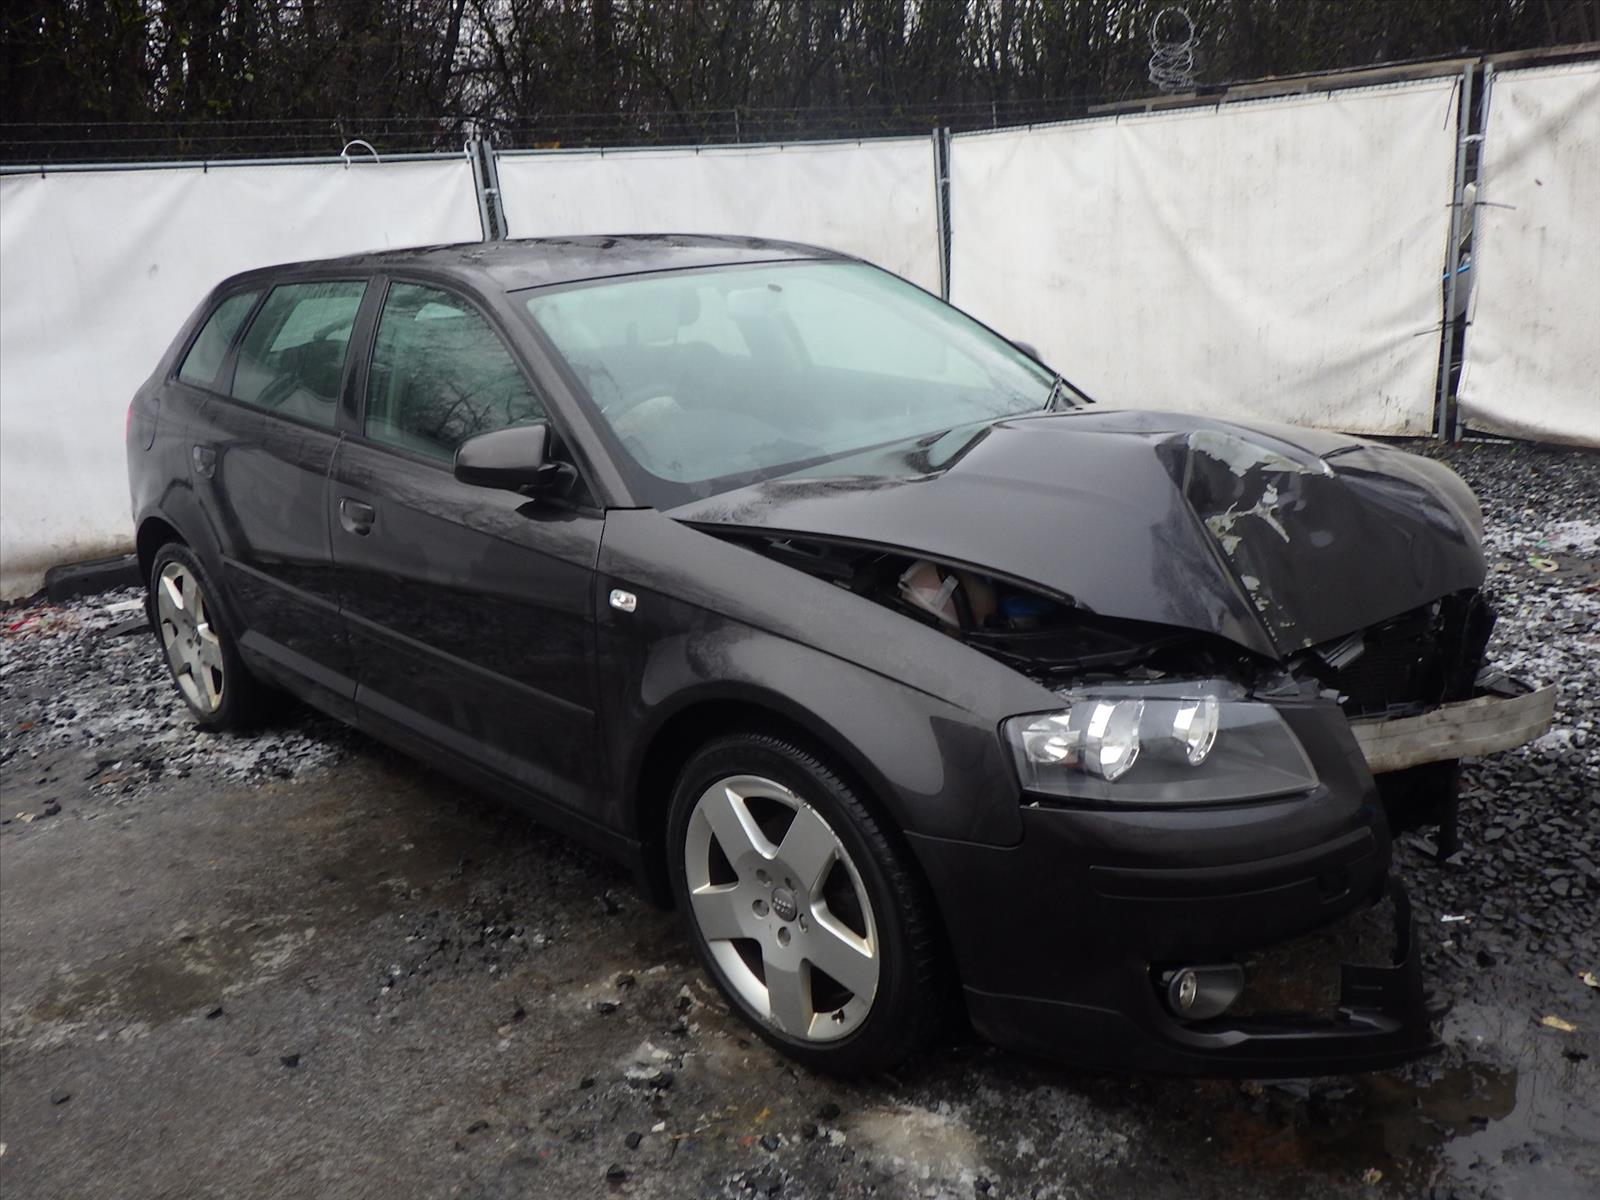 2007 audi a3 sport tdi 5 door hatchback diesel manual breaking for used and spare parts from. Black Bedroom Furniture Sets. Home Design Ideas